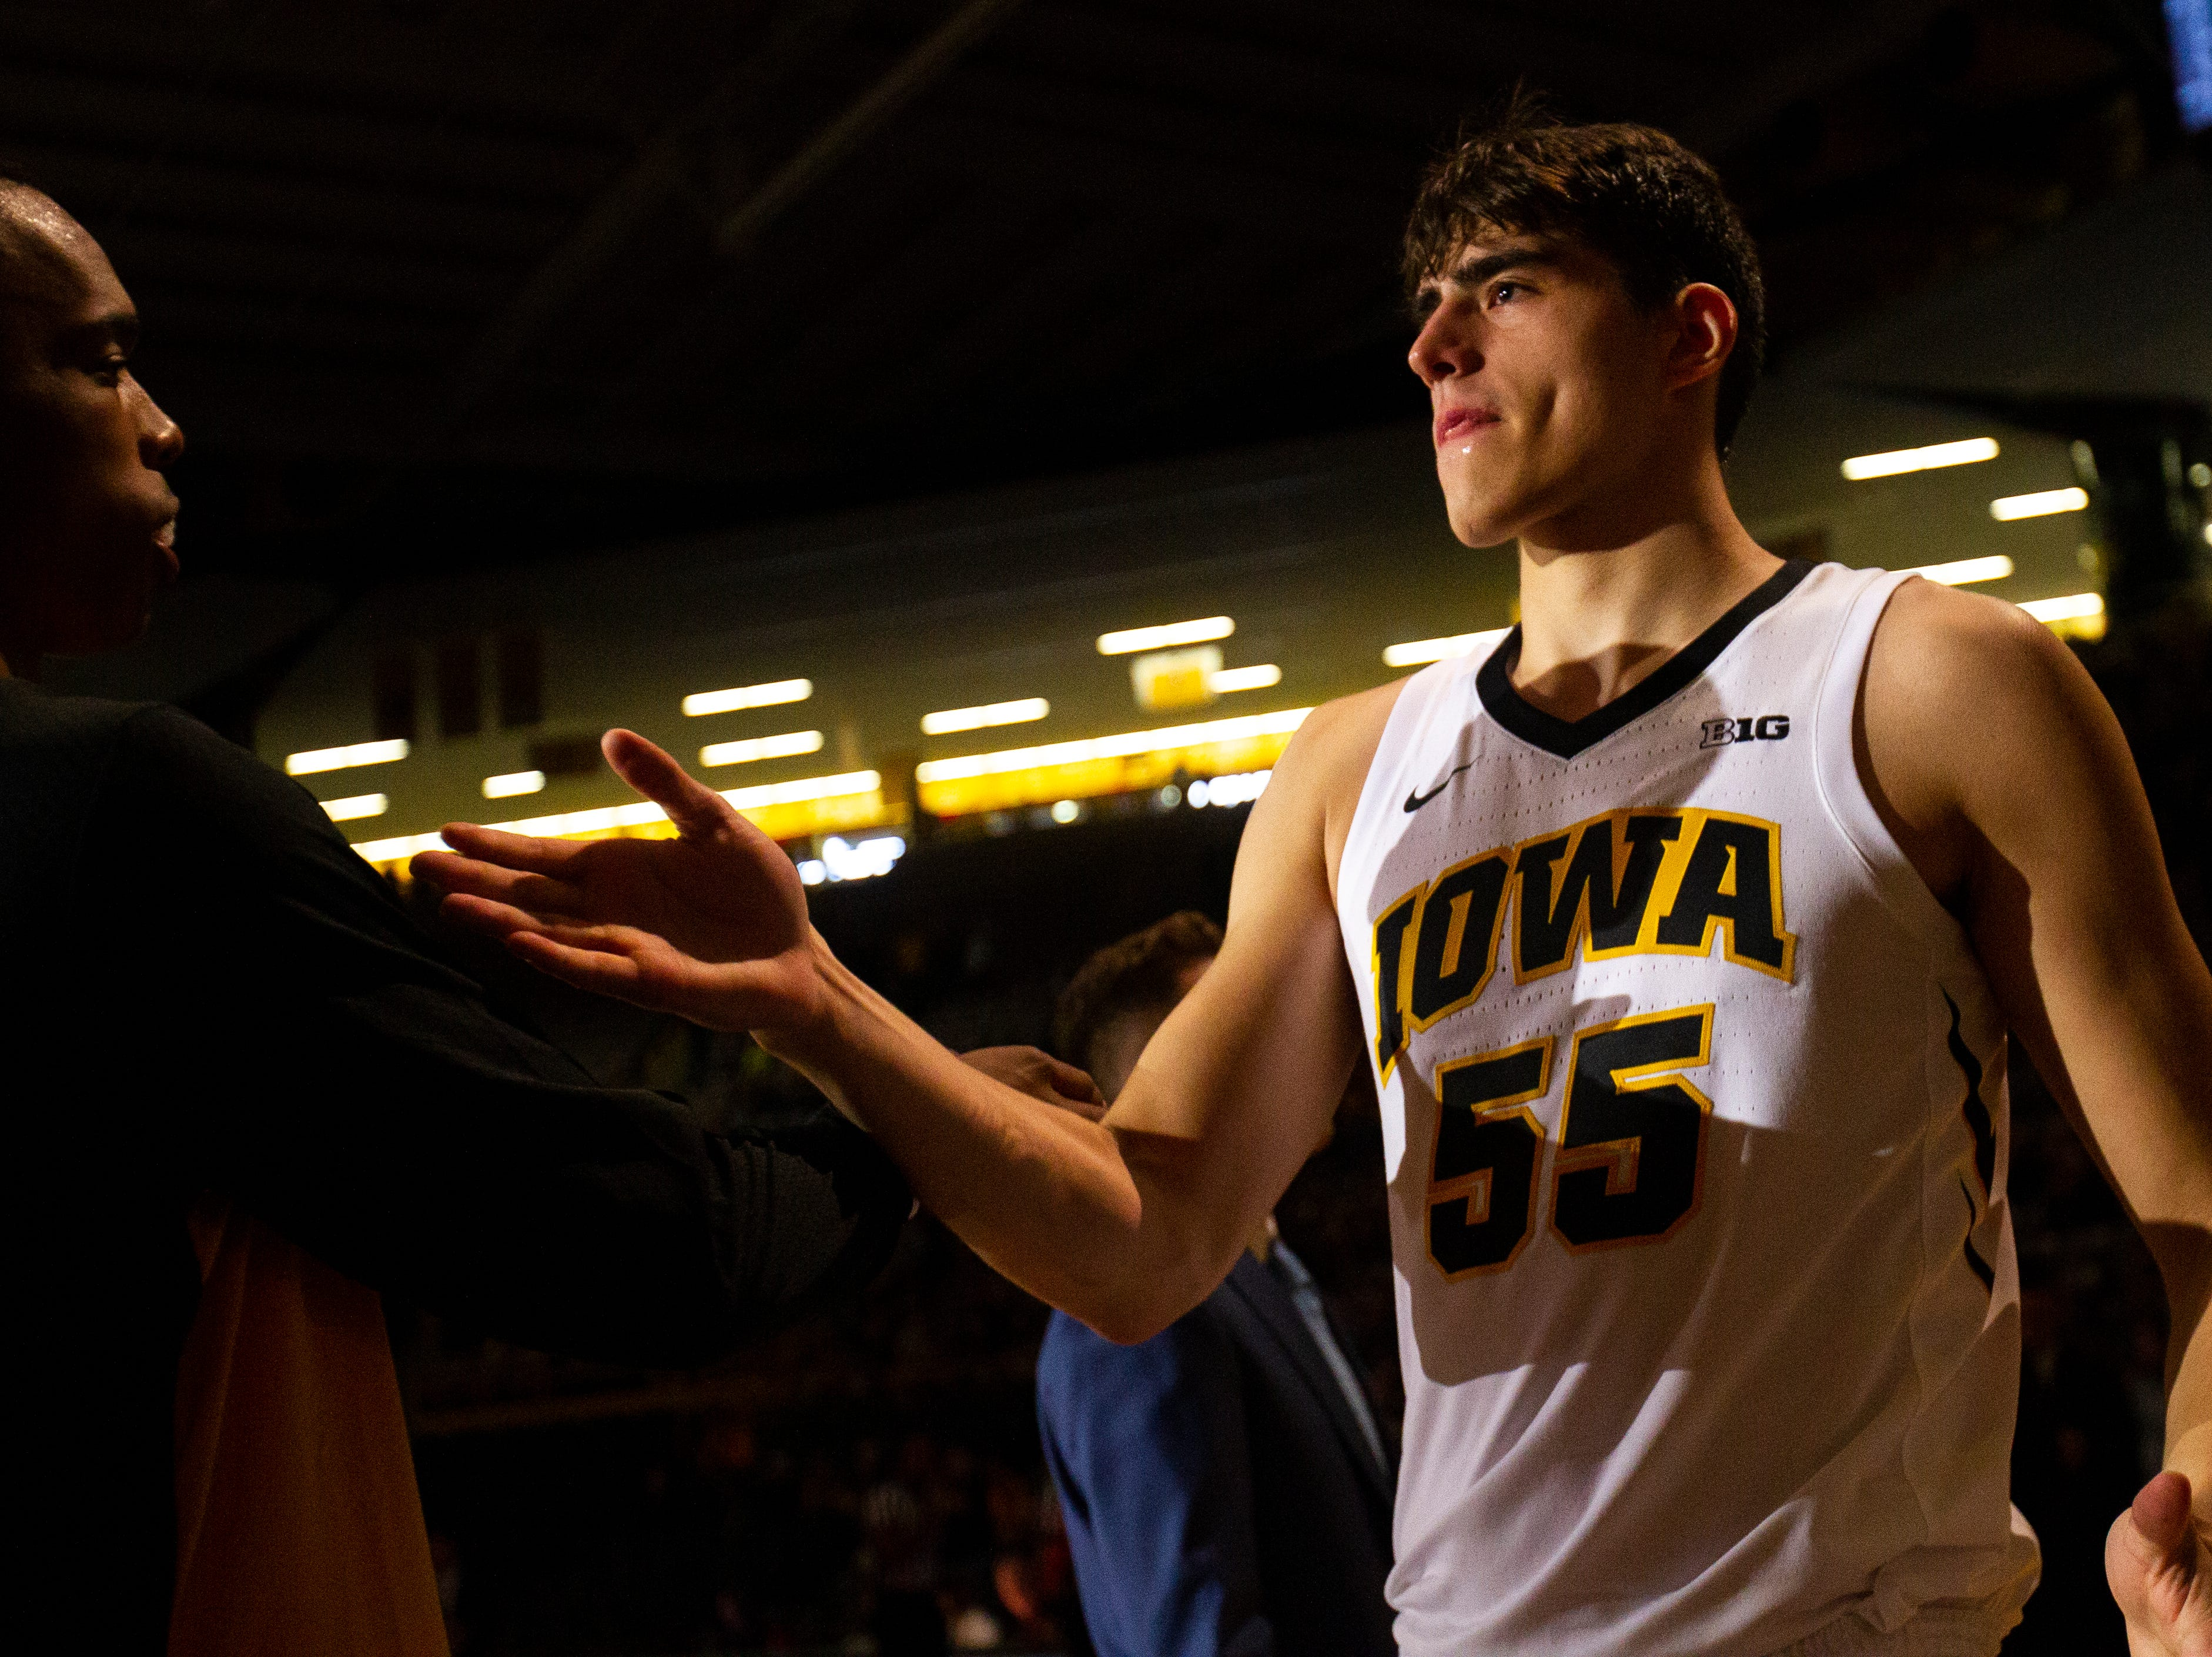 Iowa forward Luka Garza (55) is introduced before a men's basketball exhibition game on Sunday, Nov. 4, 2018, at Carver-Hawkeye Arena in Iowa City.